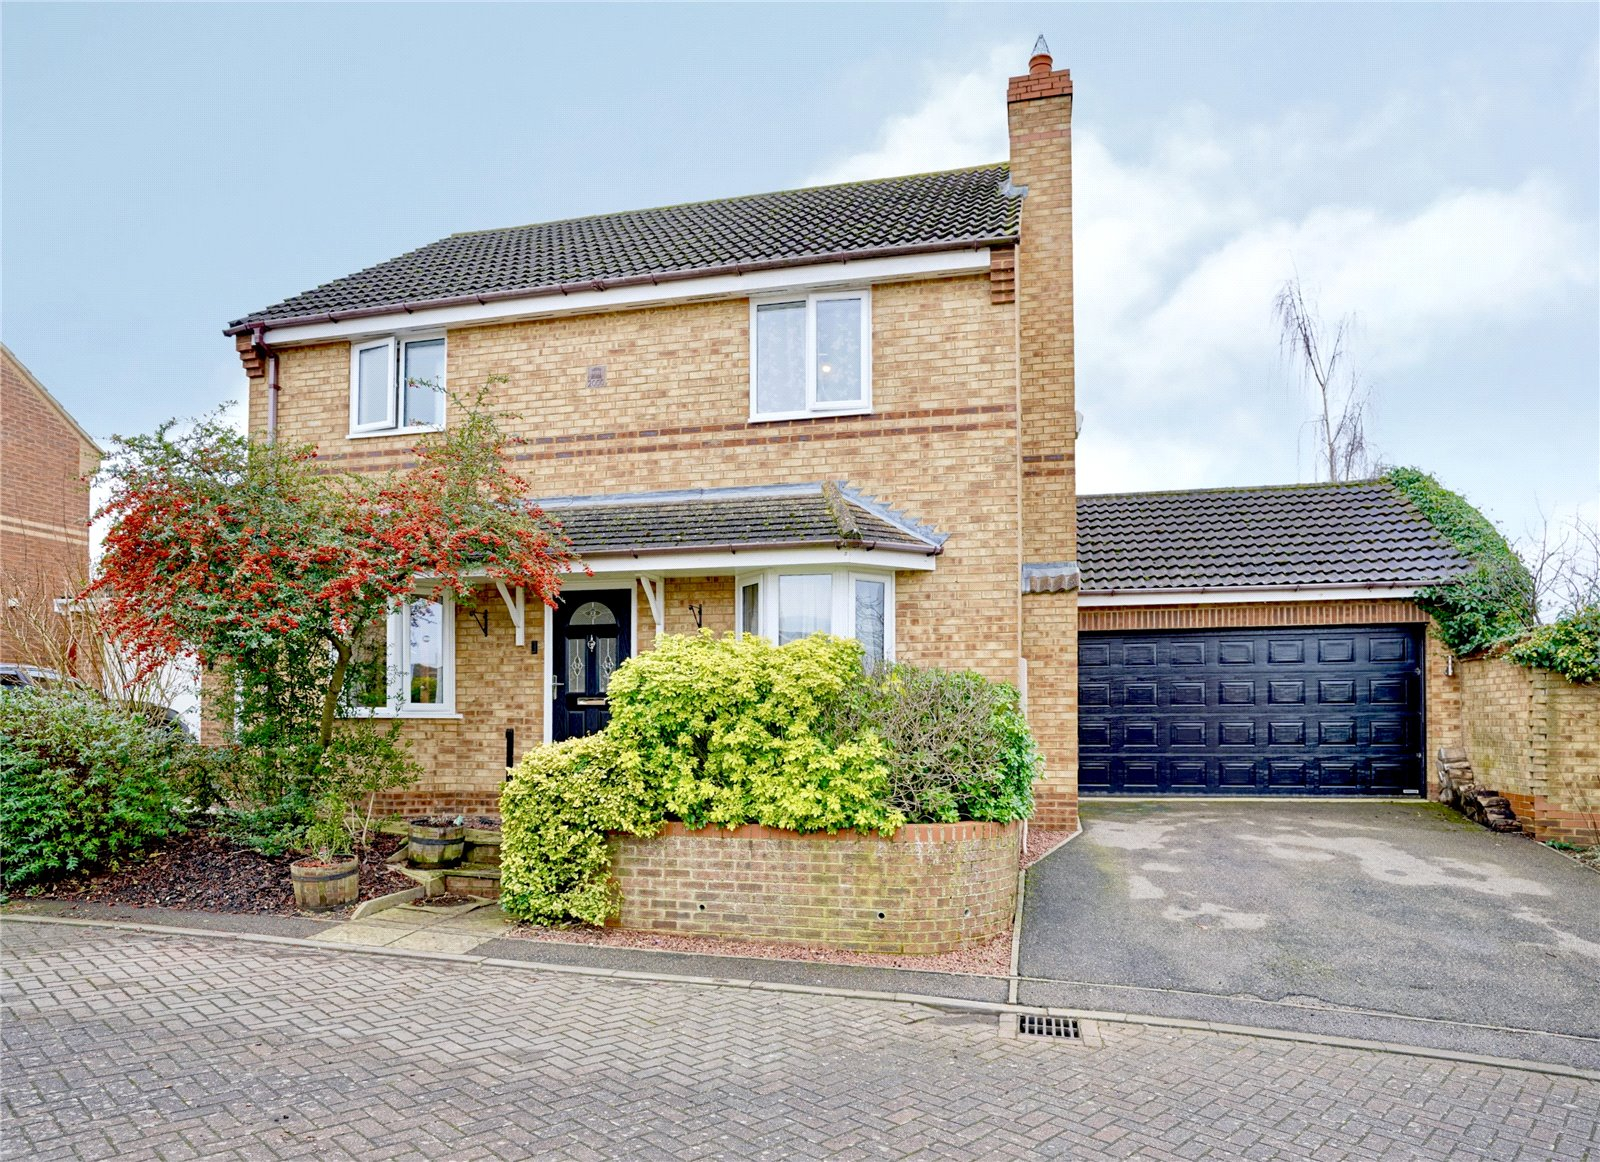 4 bed house for sale in Papworth Everard, CB23 3GW  - Property Image 1